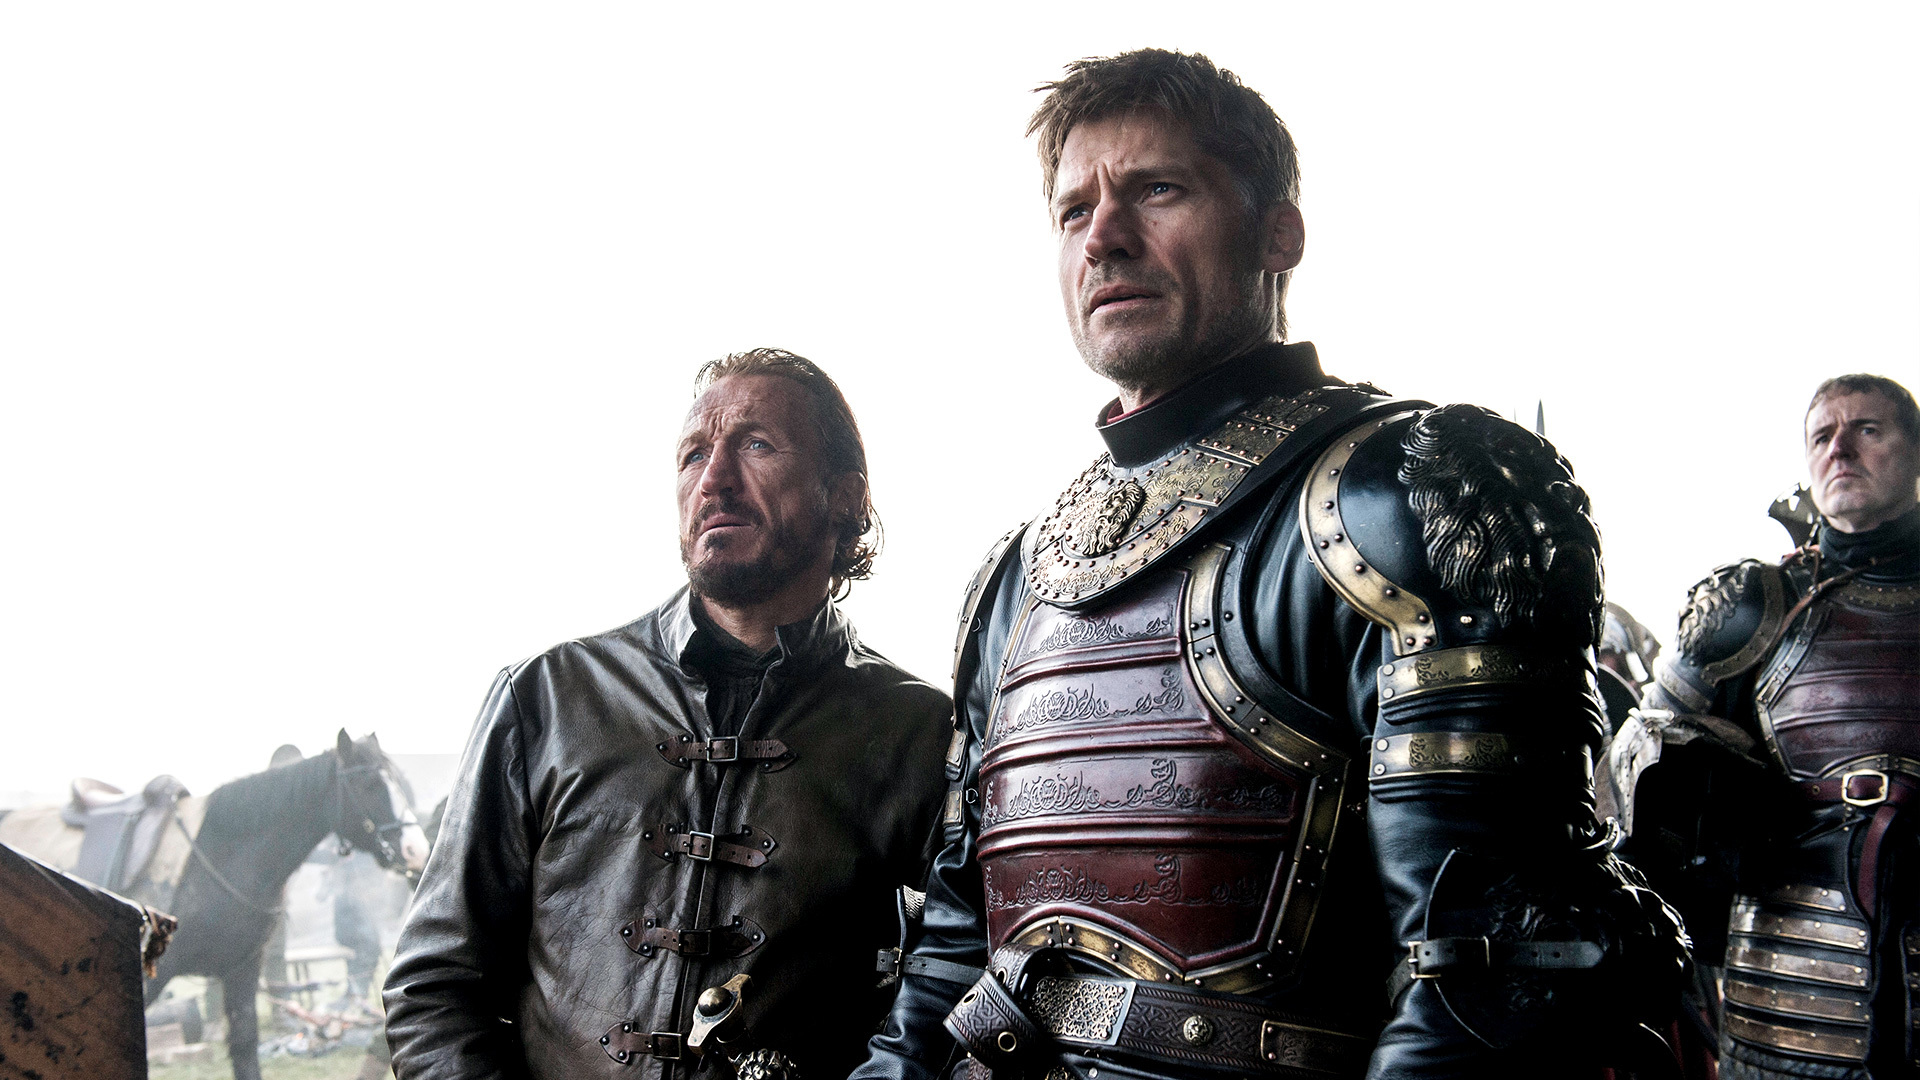 jamie-lannister-and-bronn-in-game-of-thr